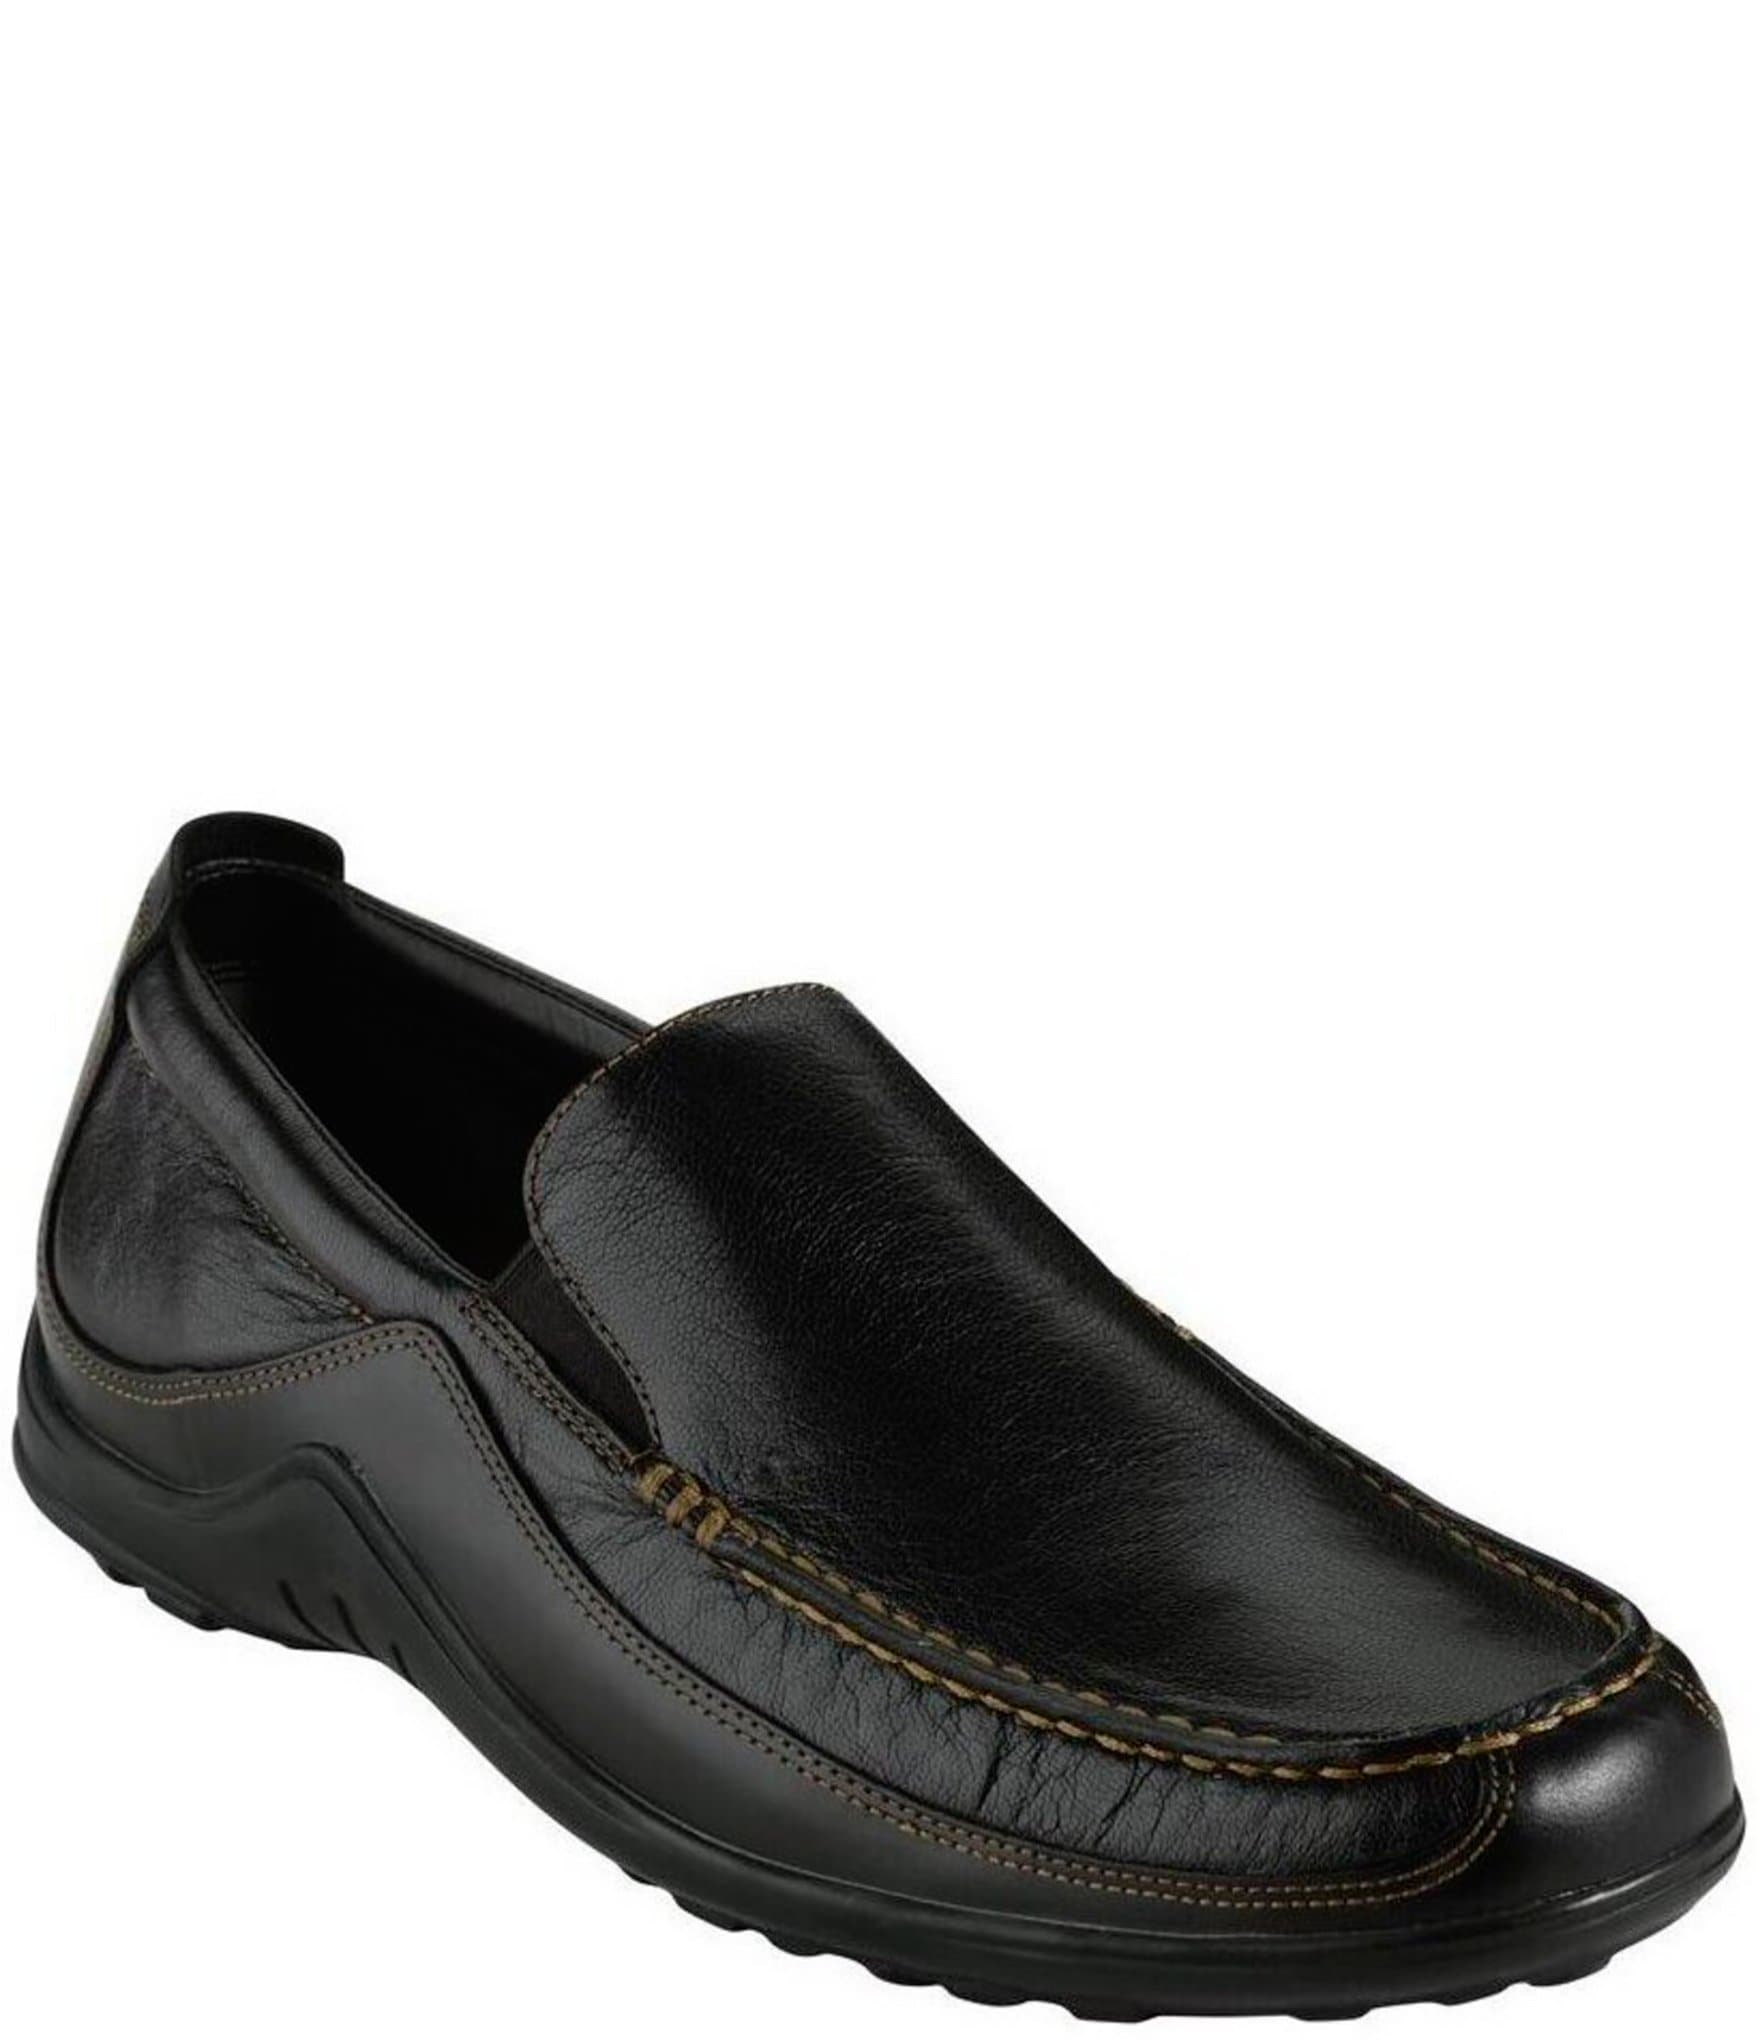 Mens Black Leather Slip On Shoes